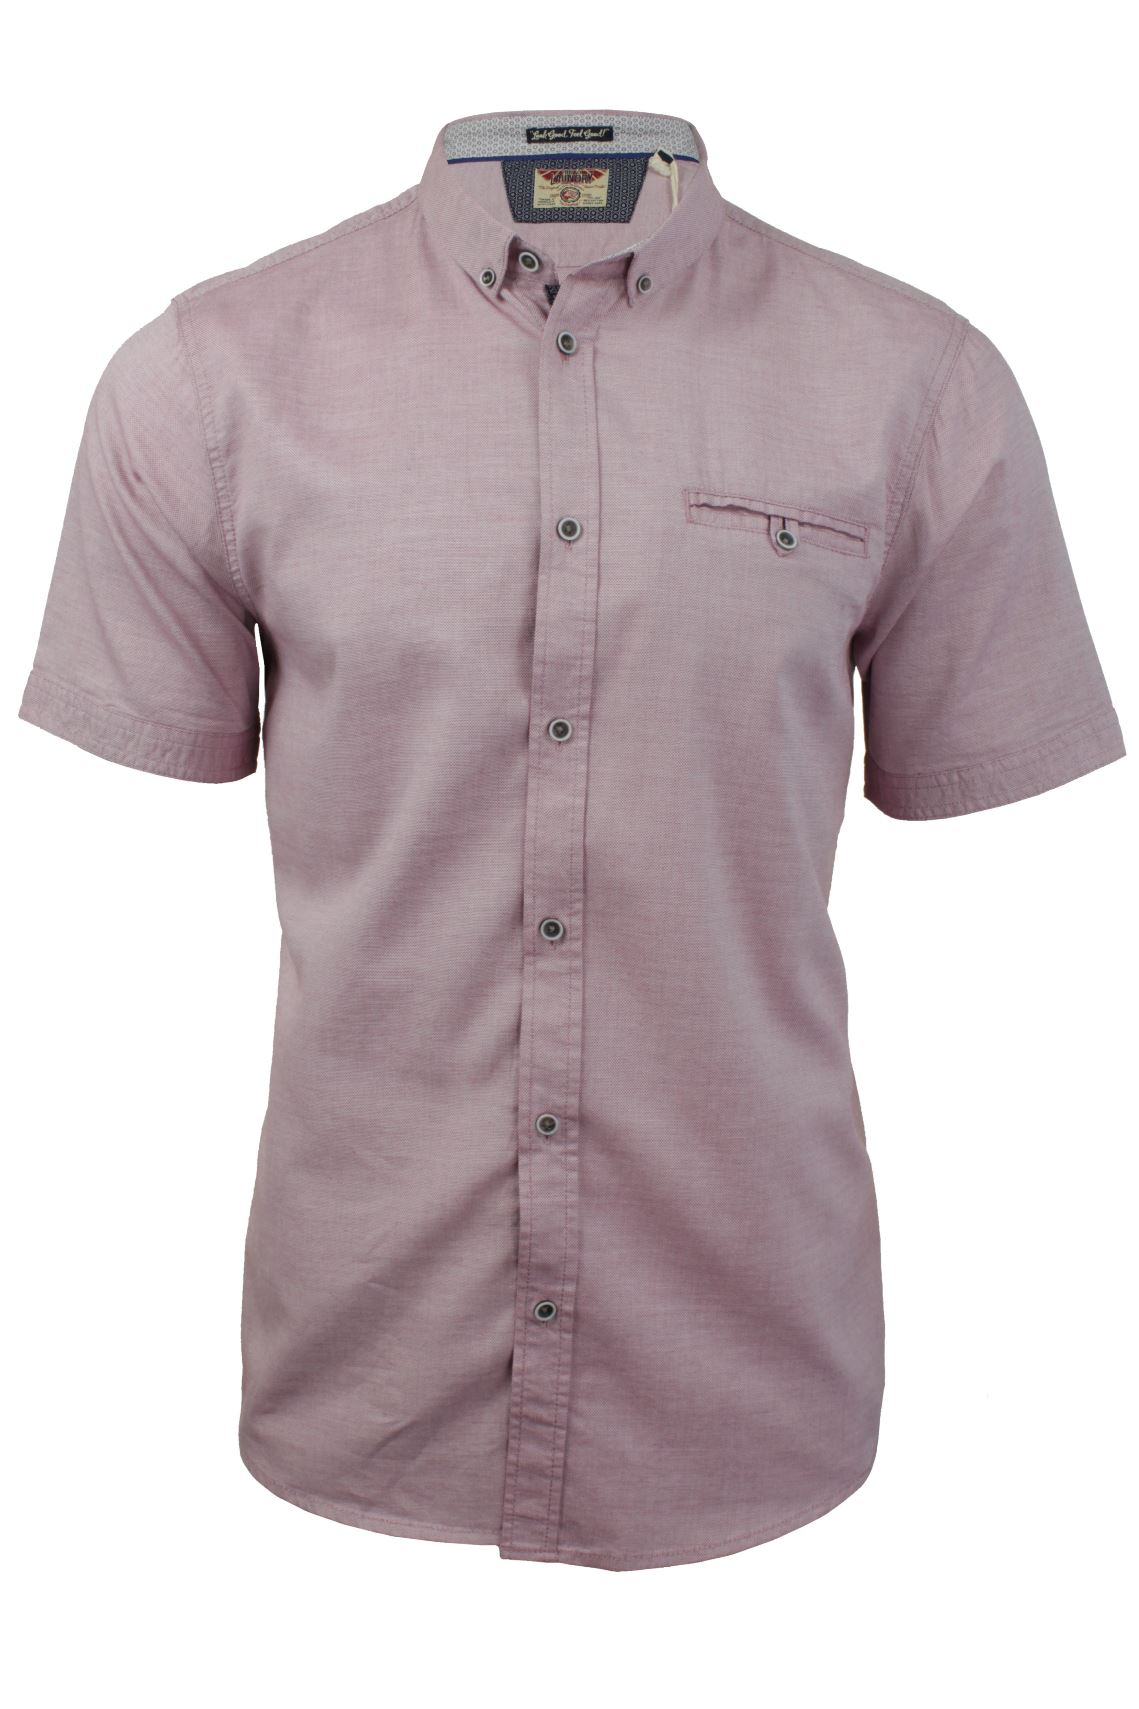 Mens oxford shirt by tokyo laundry short sleeved ebay for Mens short sleeve oxford shirt